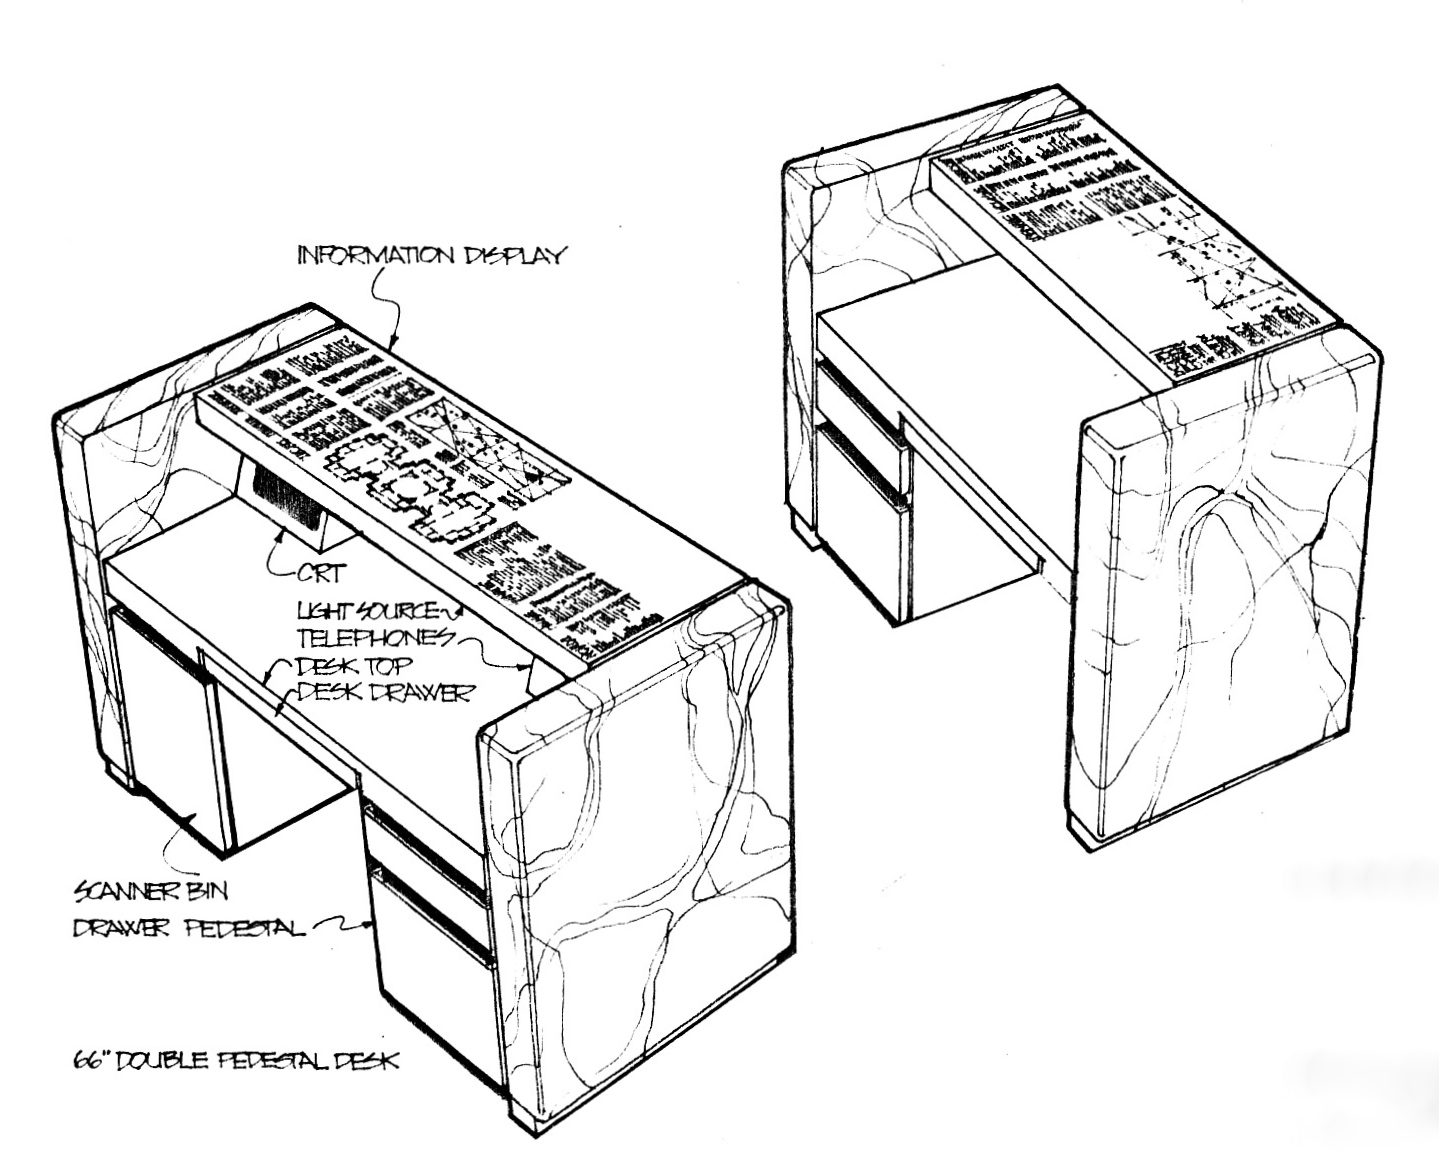 Diagrams of the reverse sides of the main security desk